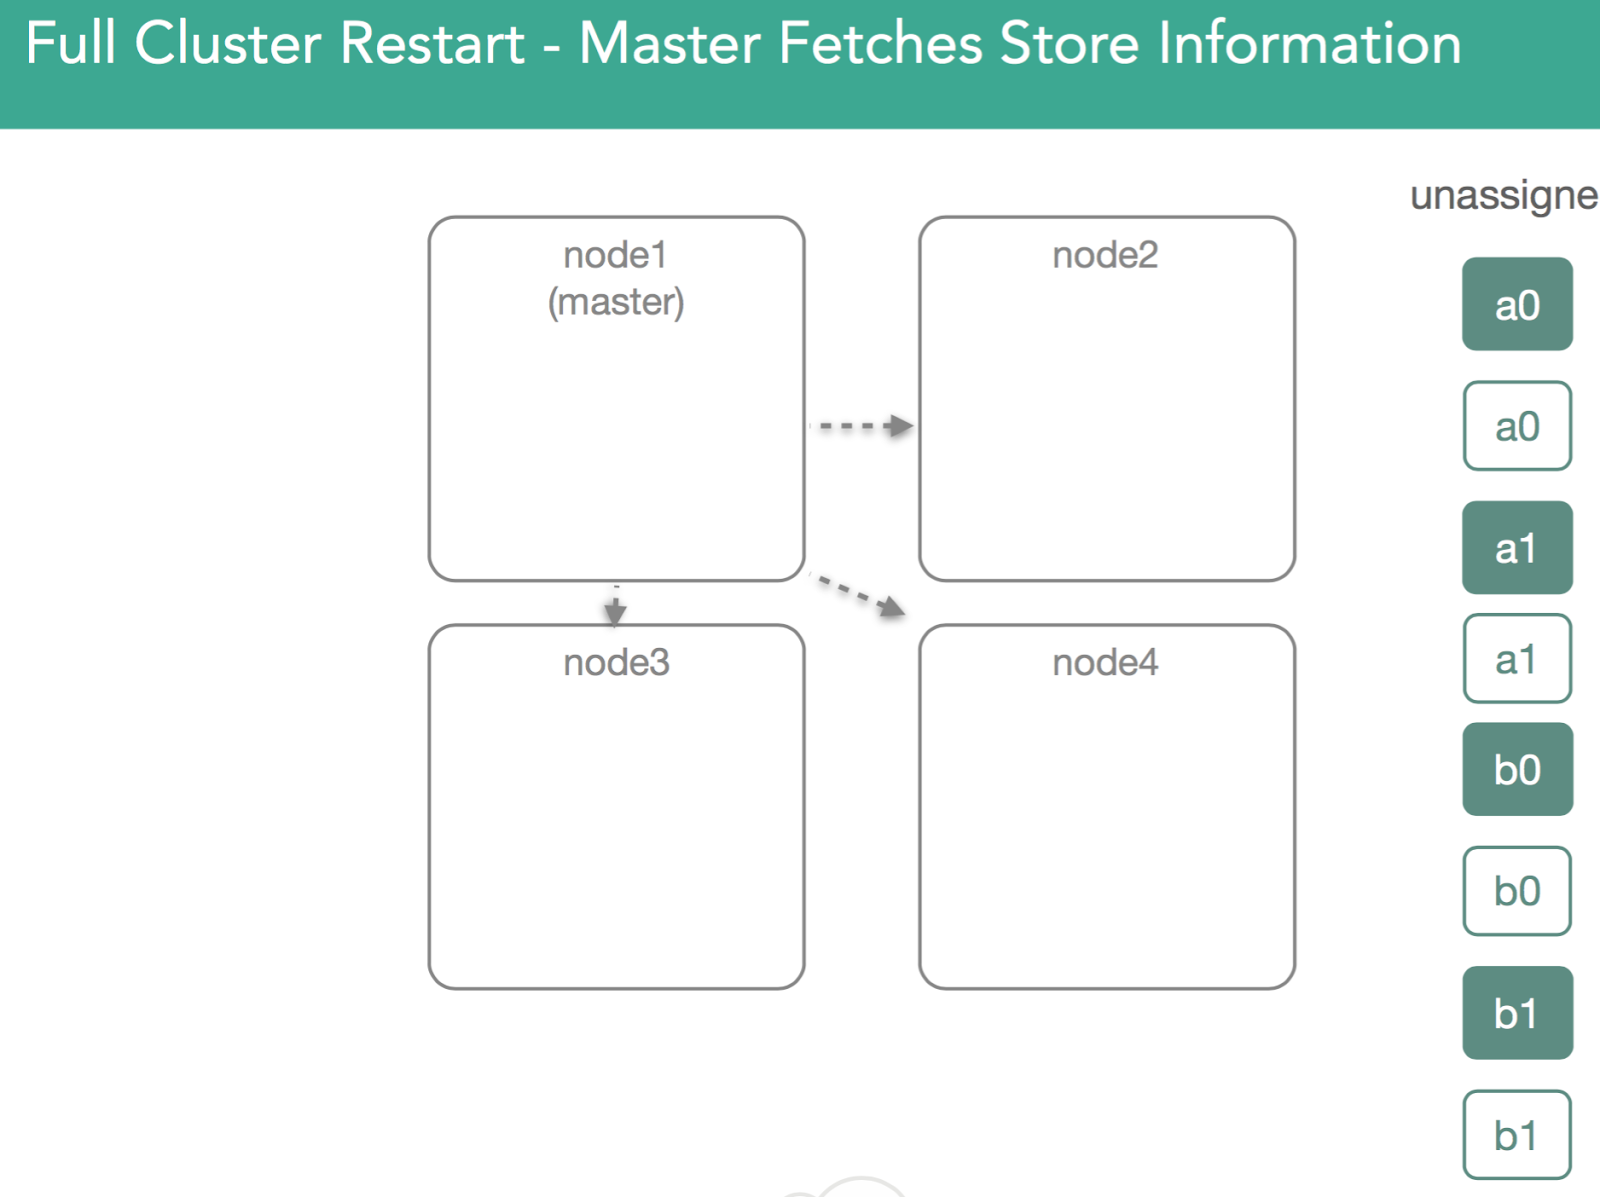 Full Cluster Restart - Master Fetches Store Information 2